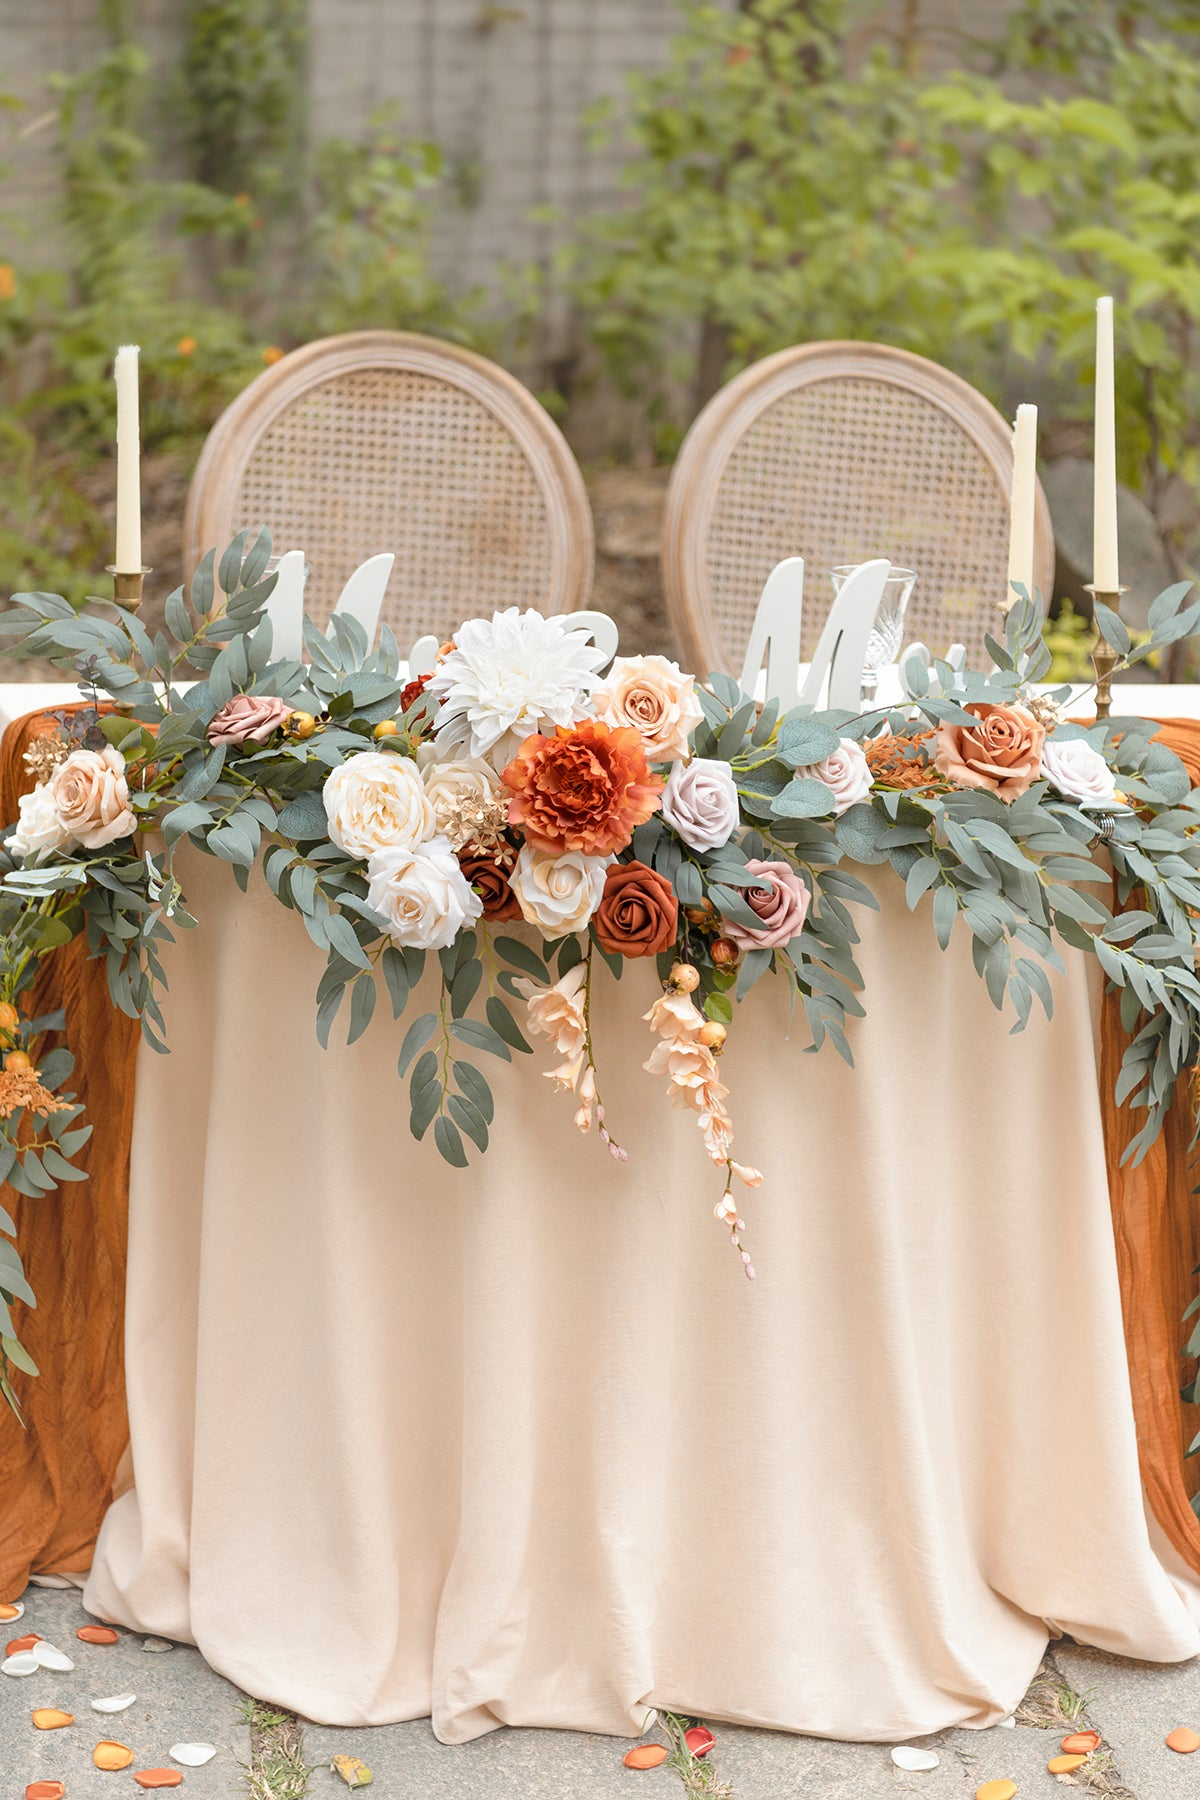 9ft Flower Garland for Sweetheart/Head Table - Mariage Terracott